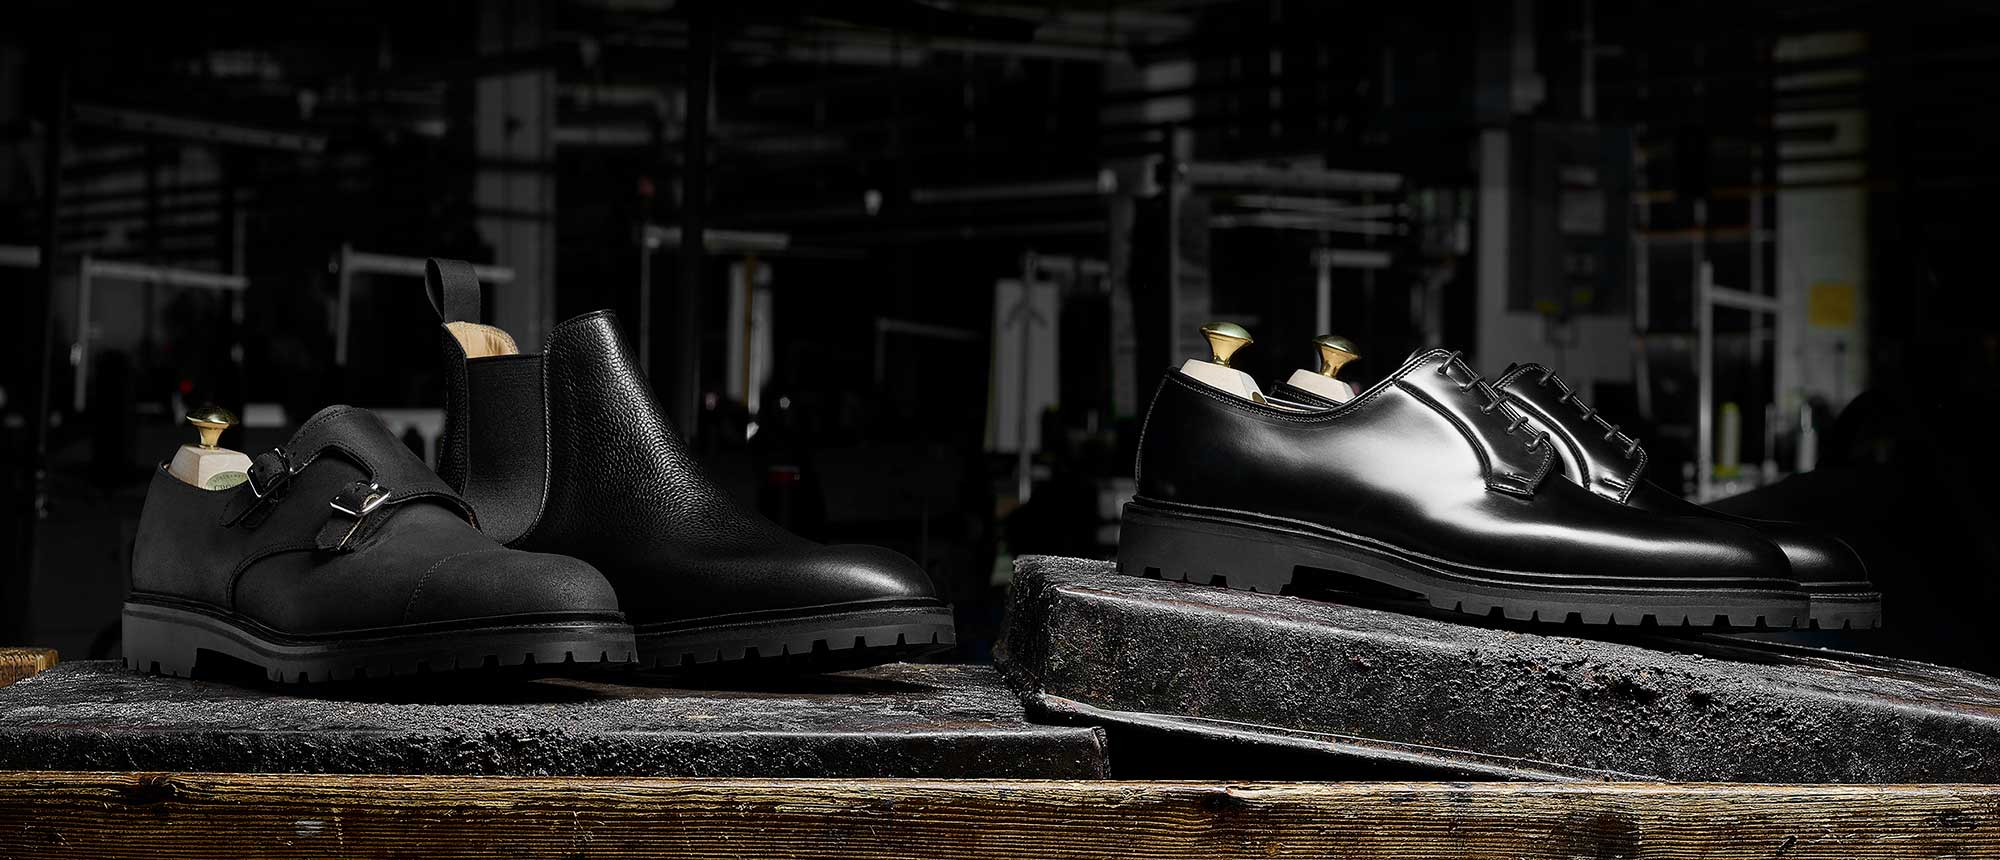 Crockett & Jones - The Black Editions Details... Lanark 3